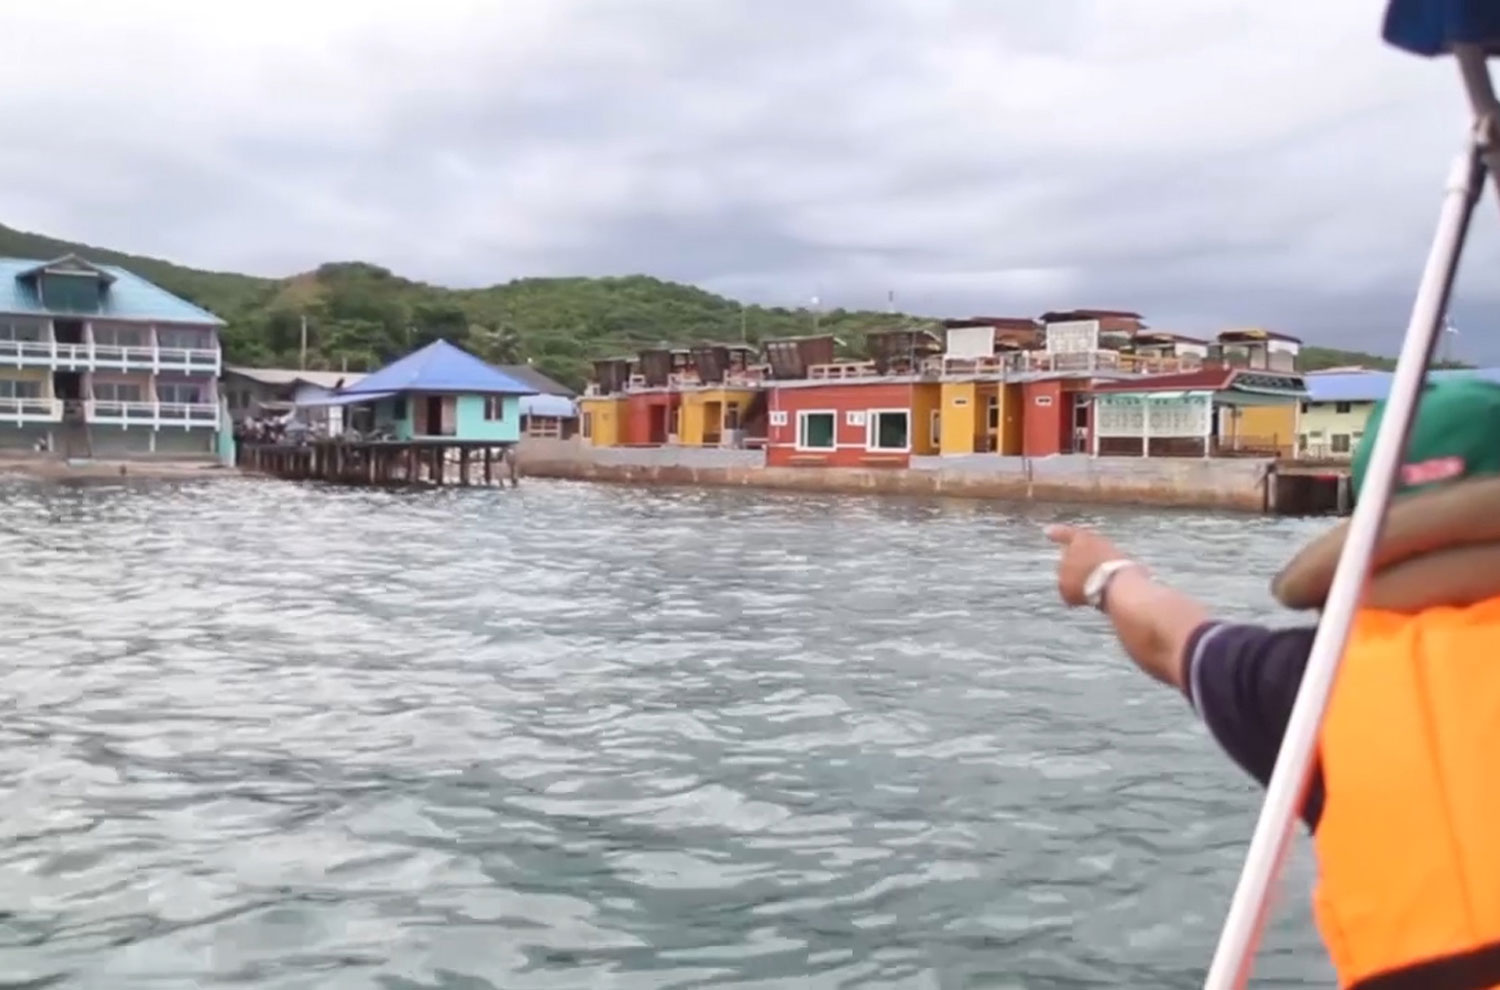 A  marine official shows resorts suspected of illegally encroaching into the sea at Koh Lan island off Pattaya, Chon Buri. (Photo: Chaiyot Pupattanapong)